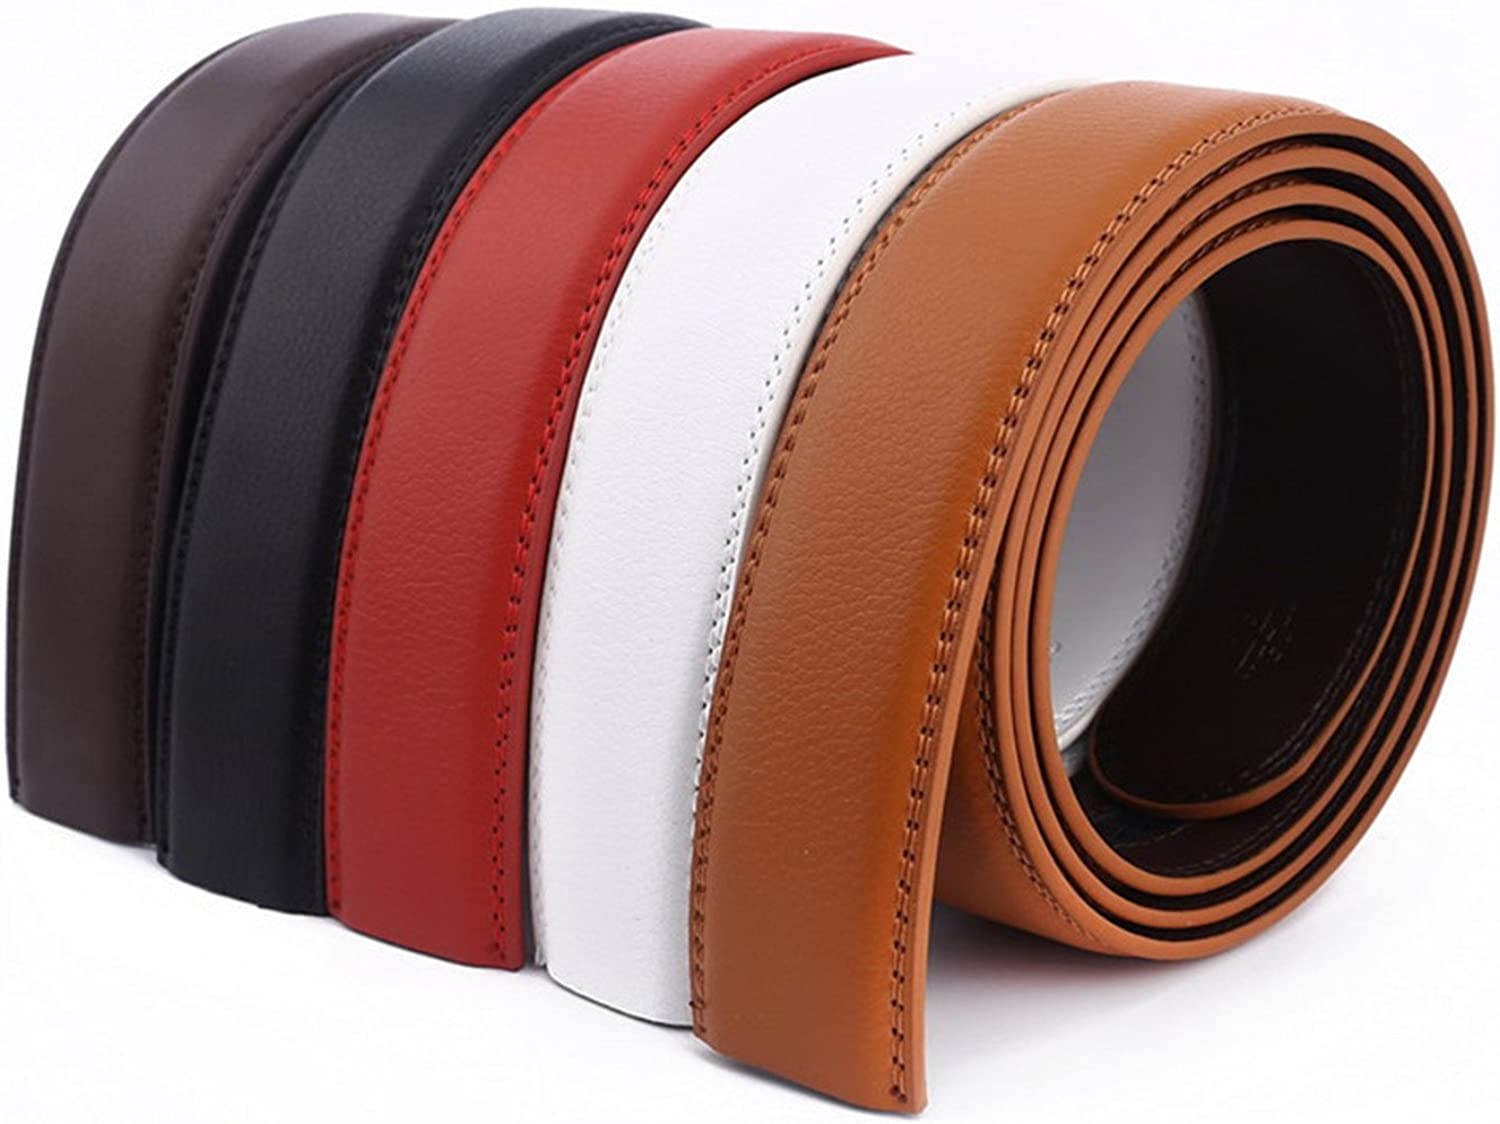 Surprising Day No Buckle belt 3.5cm white red brown 5color Genuine Leather Automatic Belts Body Strap Men ribbon belt